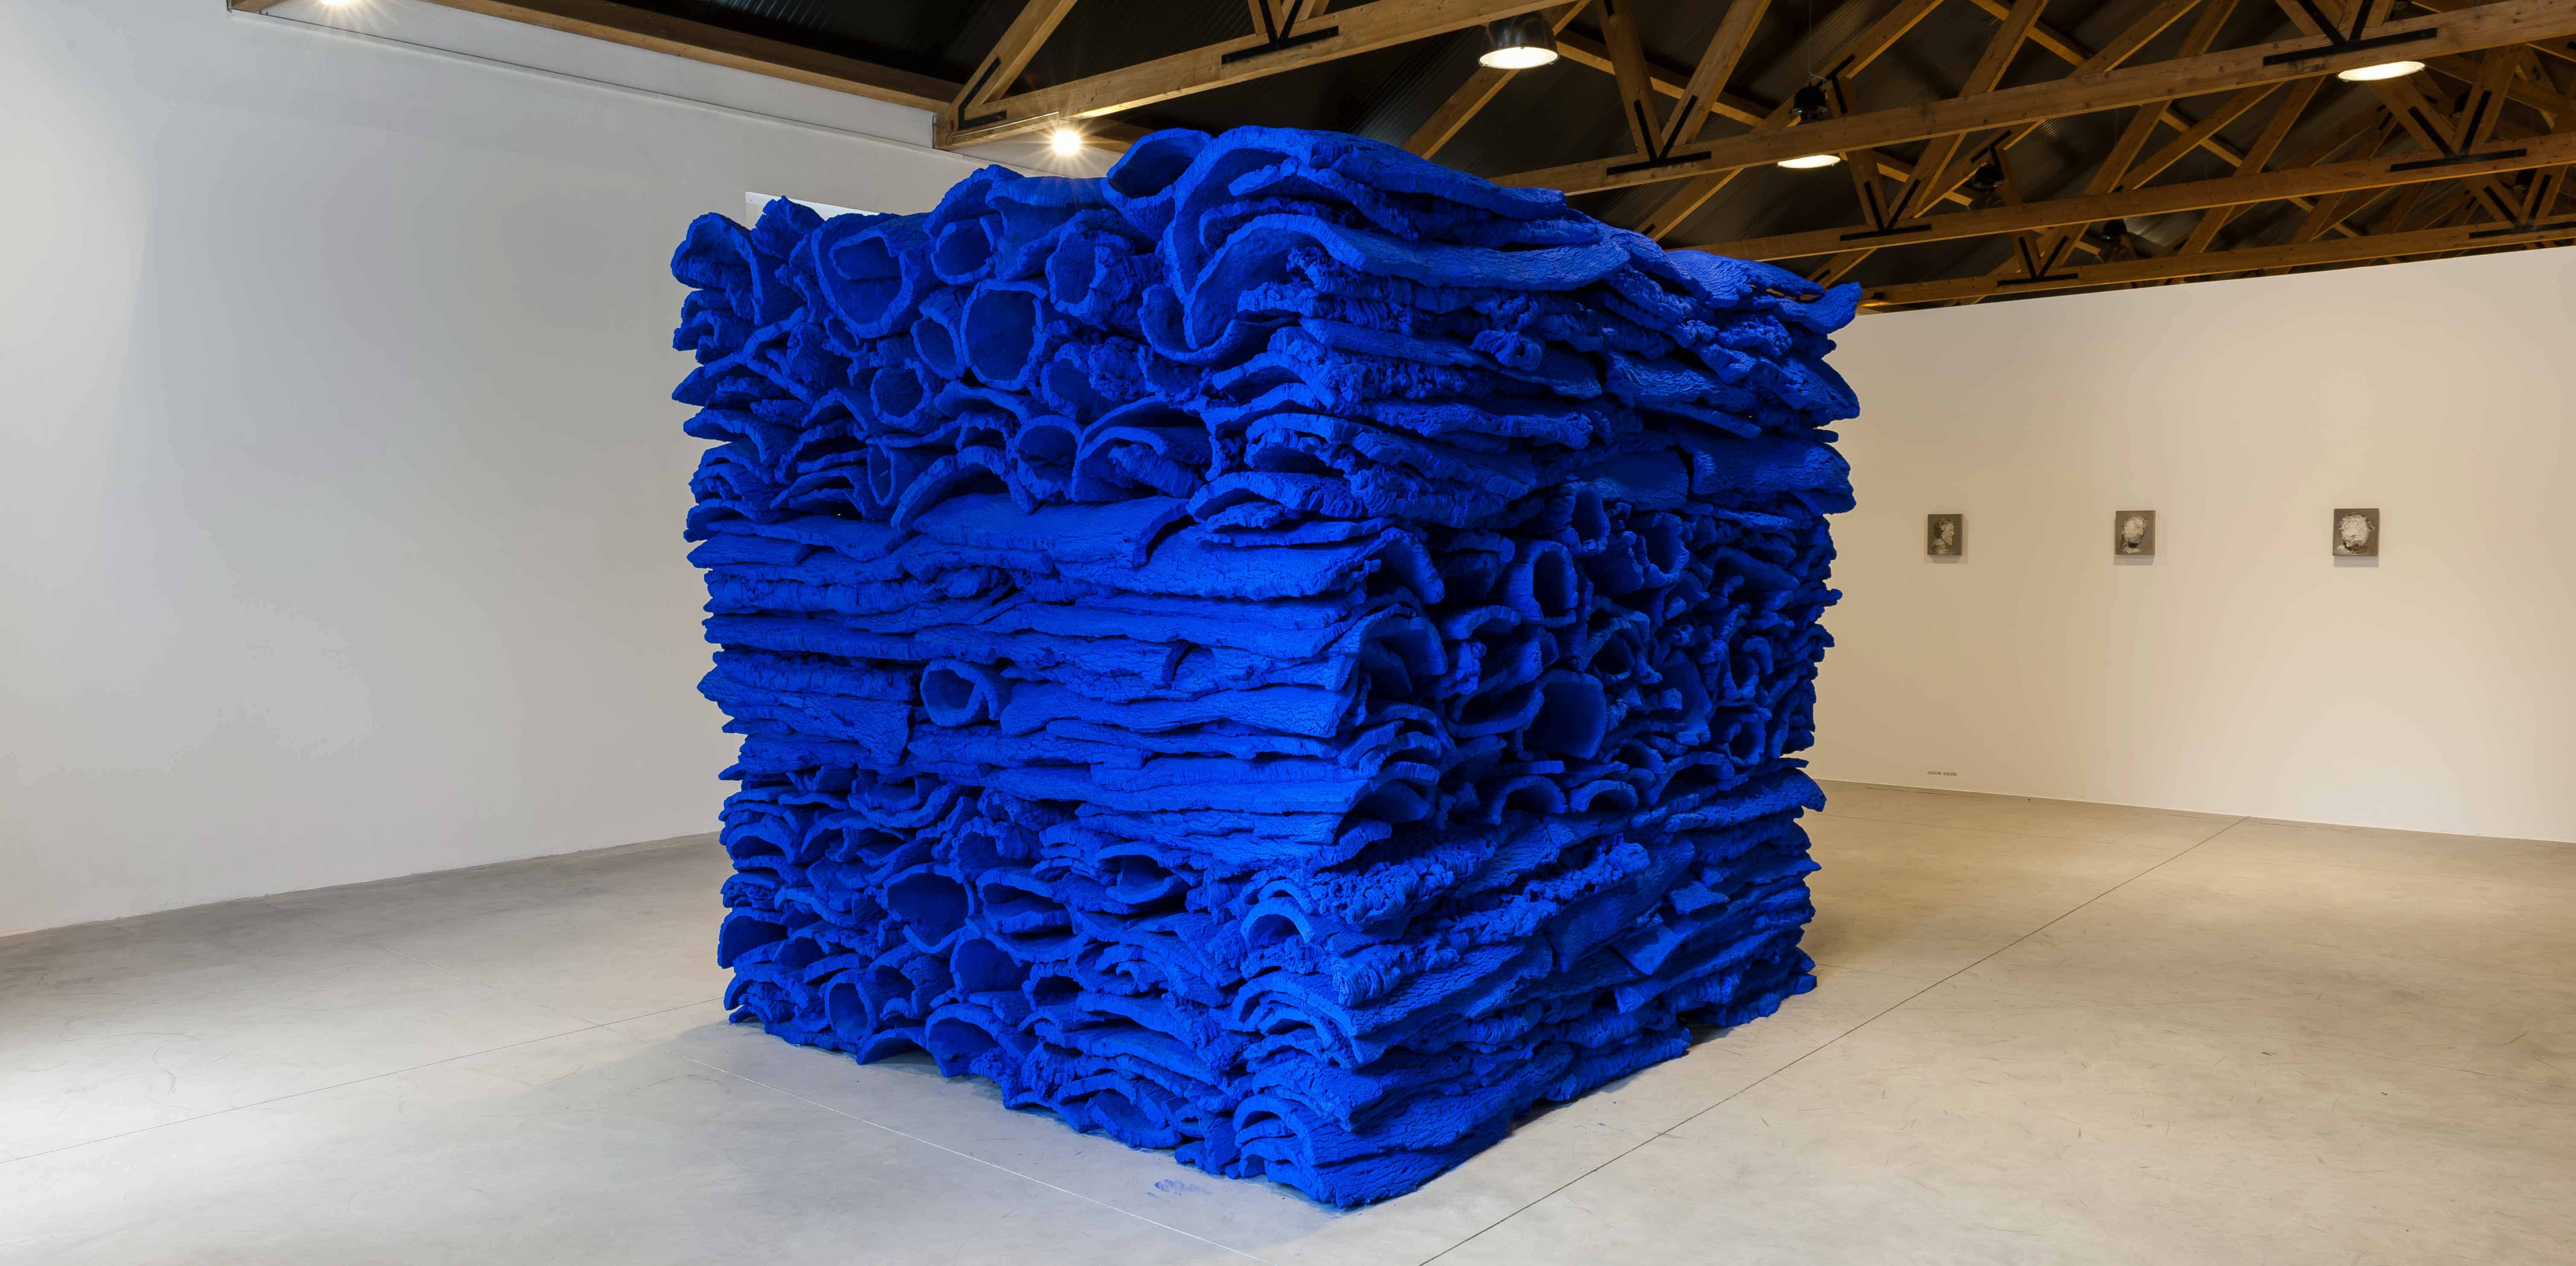 ultramarine-blue-cork-stack_great-men-die-twice-casa-da-cultura_august-2013-1-photo-dave-morgan